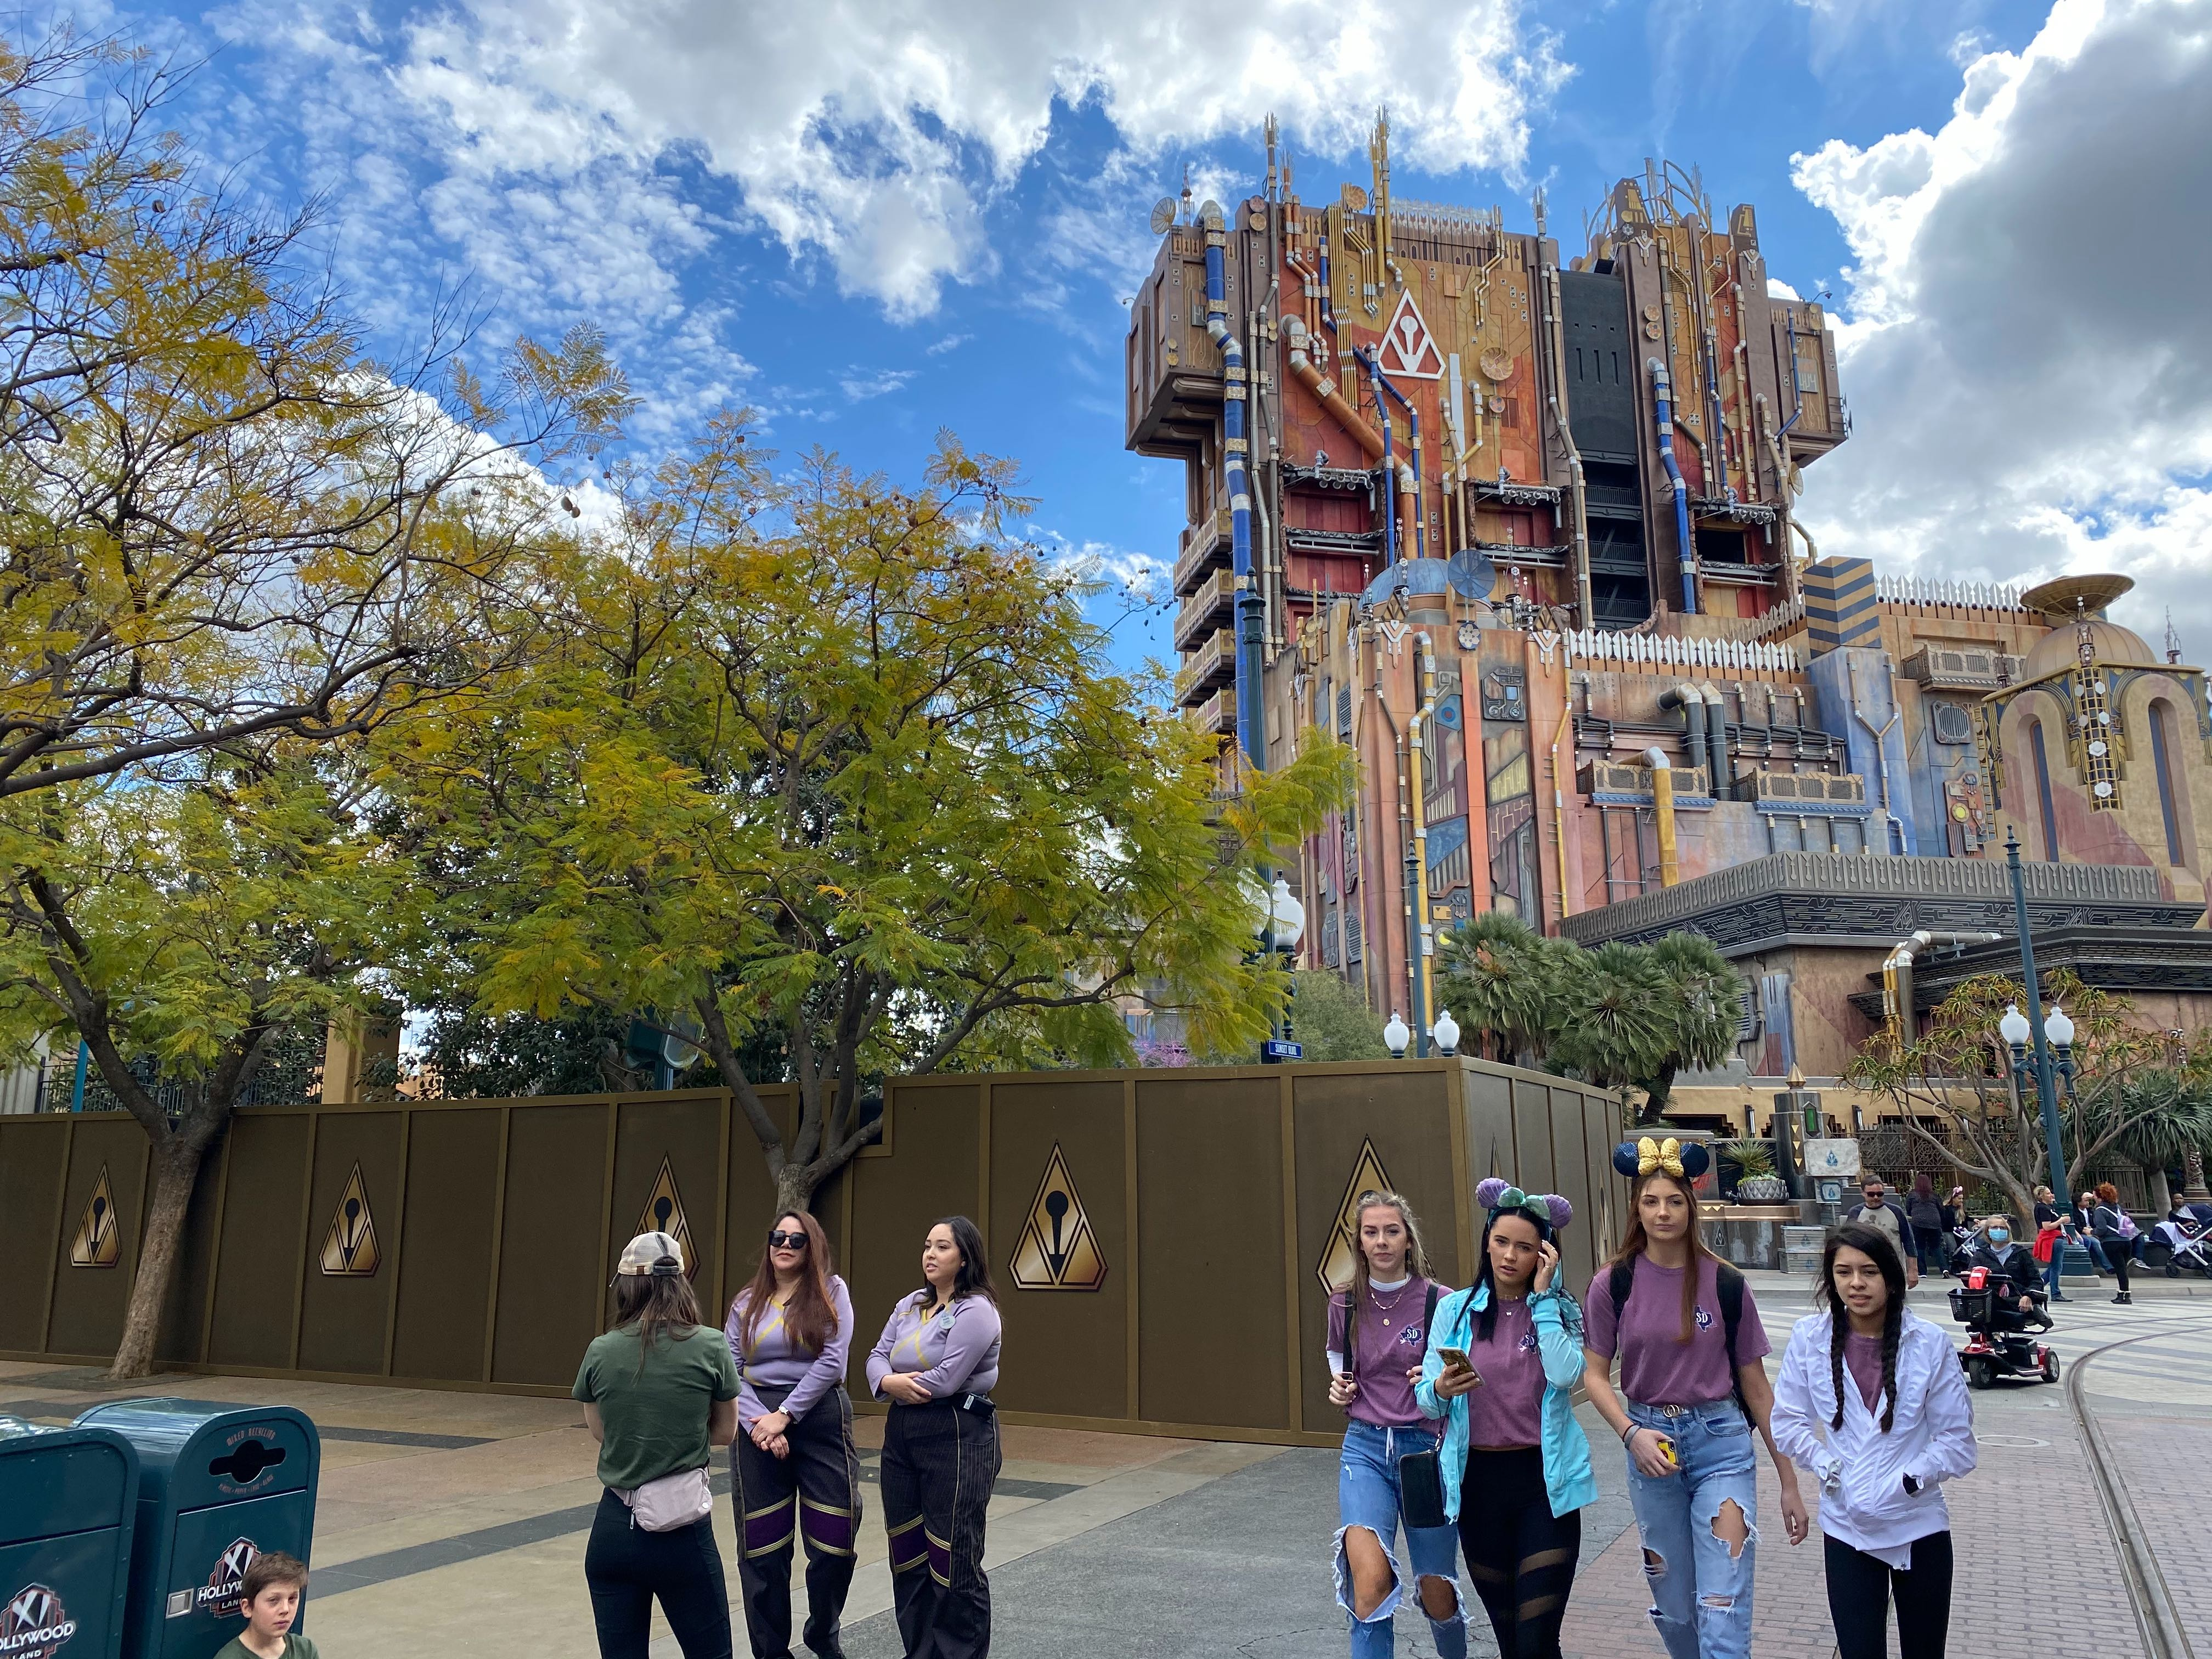 Construction Walls Go Up Outside of Guardians of the Galaxy - Mission: Breakout! at Disney California Adventure